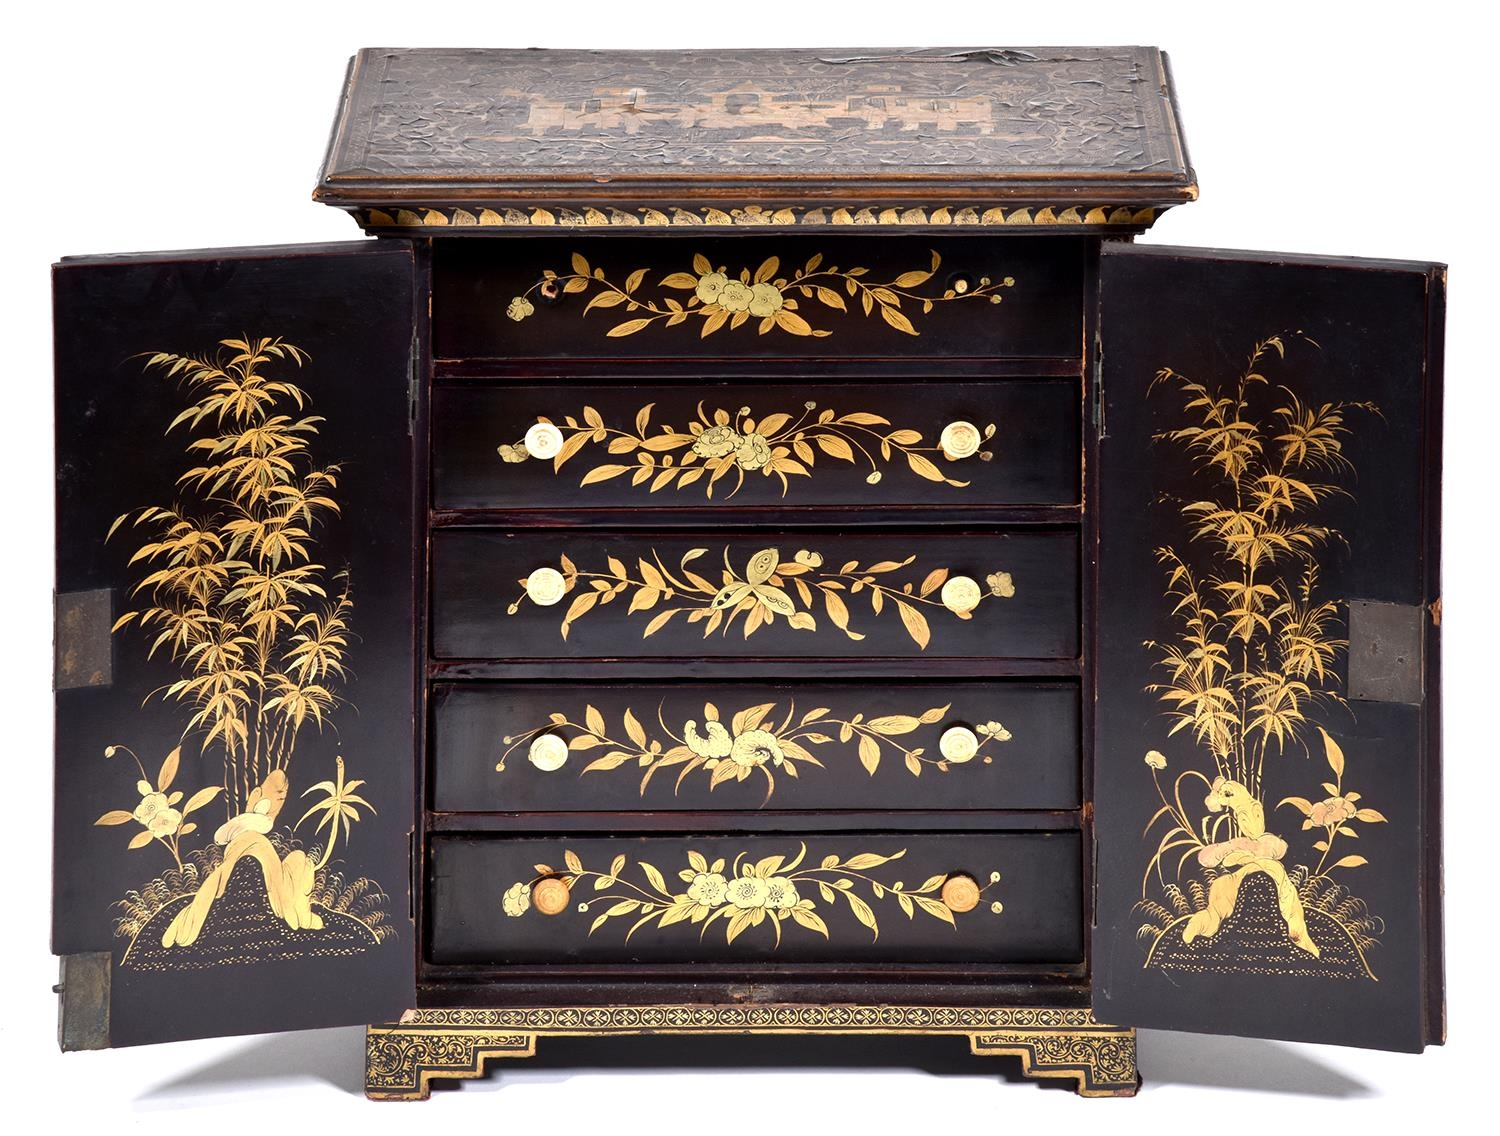 A Chinese black and gold export lacquer table cabinet, early 19th c, the panelled doors enclosing - Image 2 of 2